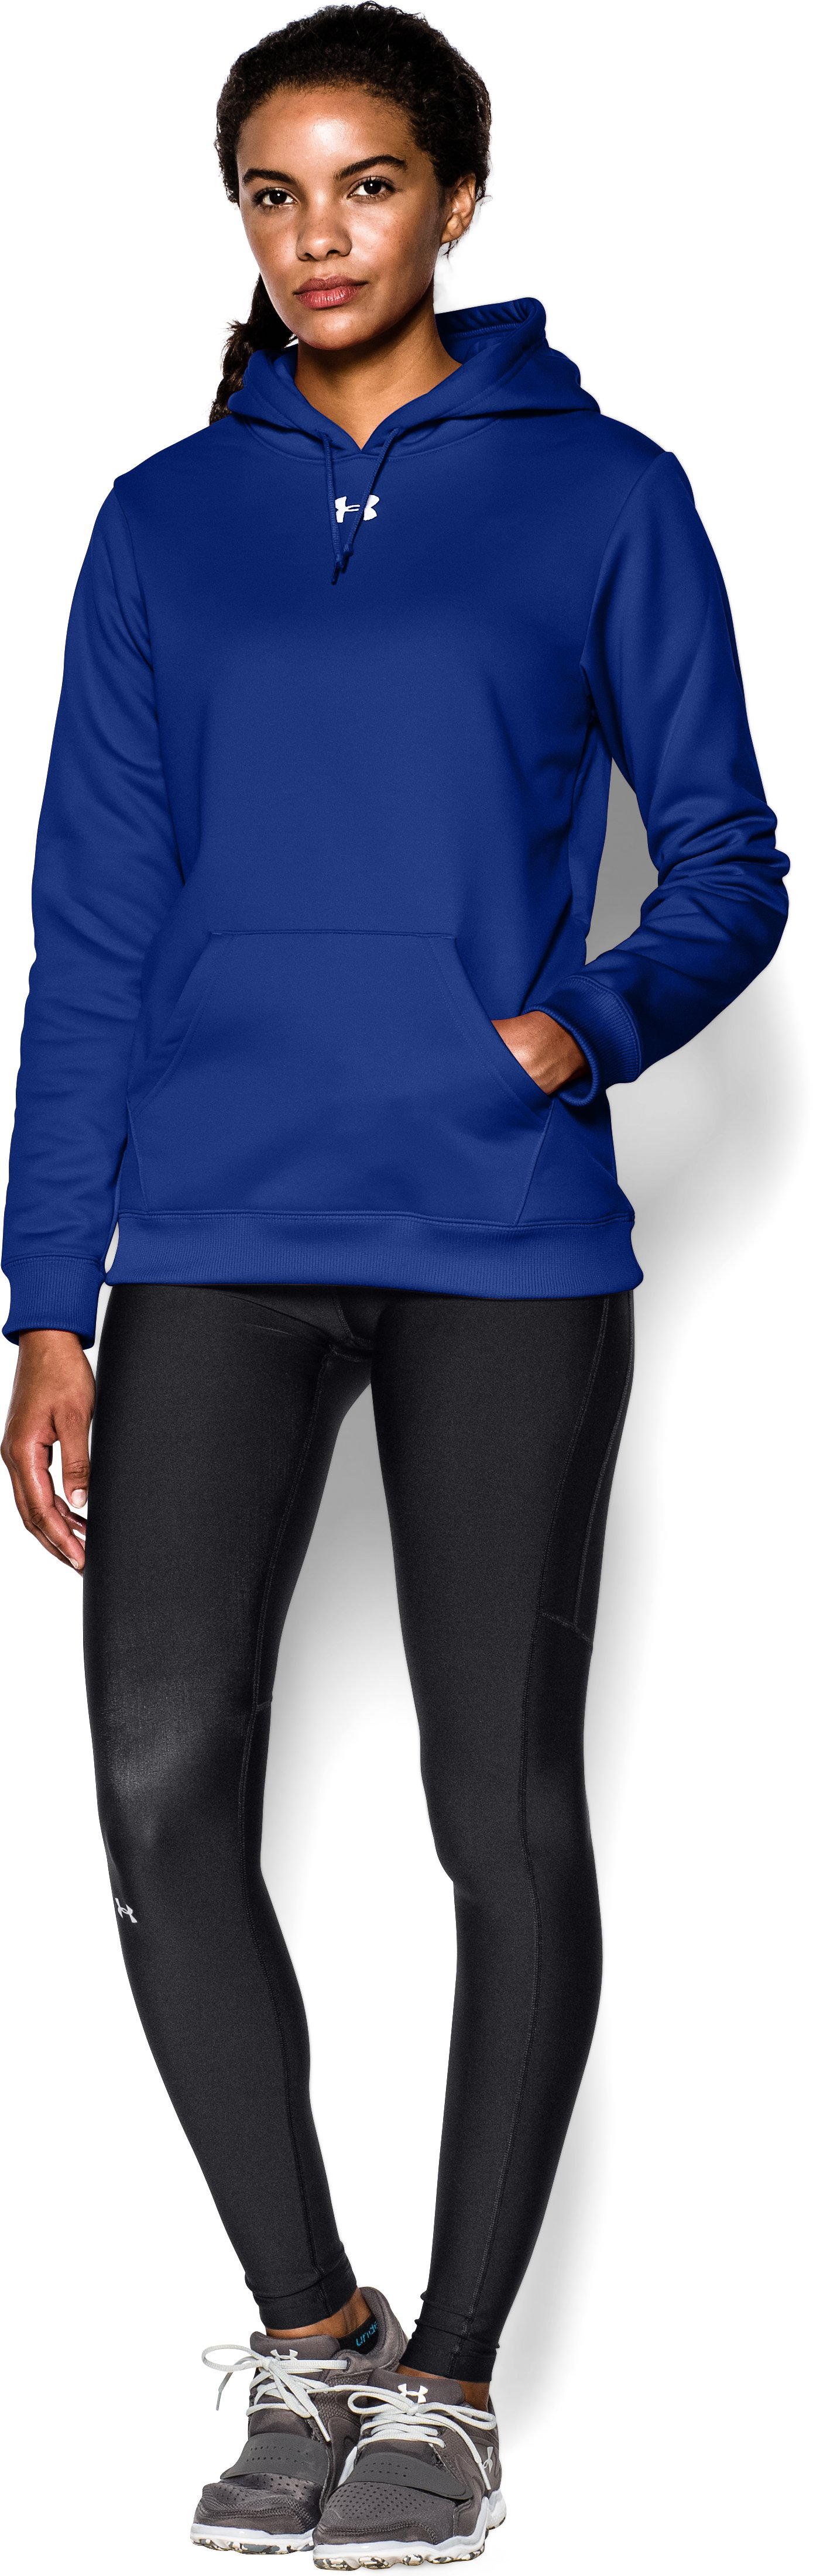 Women's Armour® Fleece Team Hoodie, Royal, Front